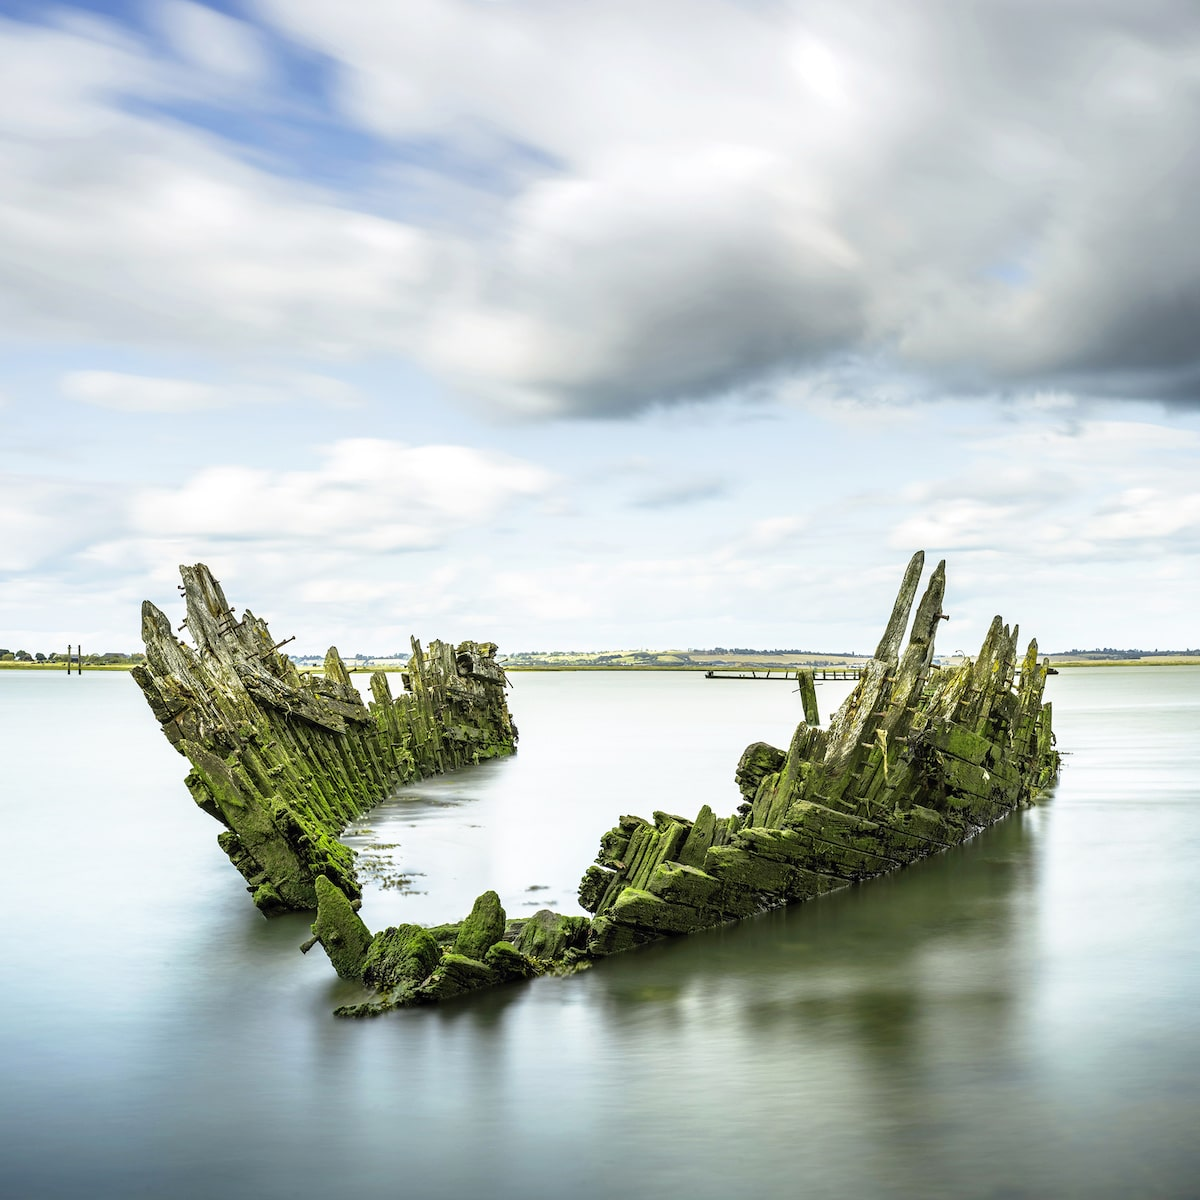 Ruins of a Boat Wreck